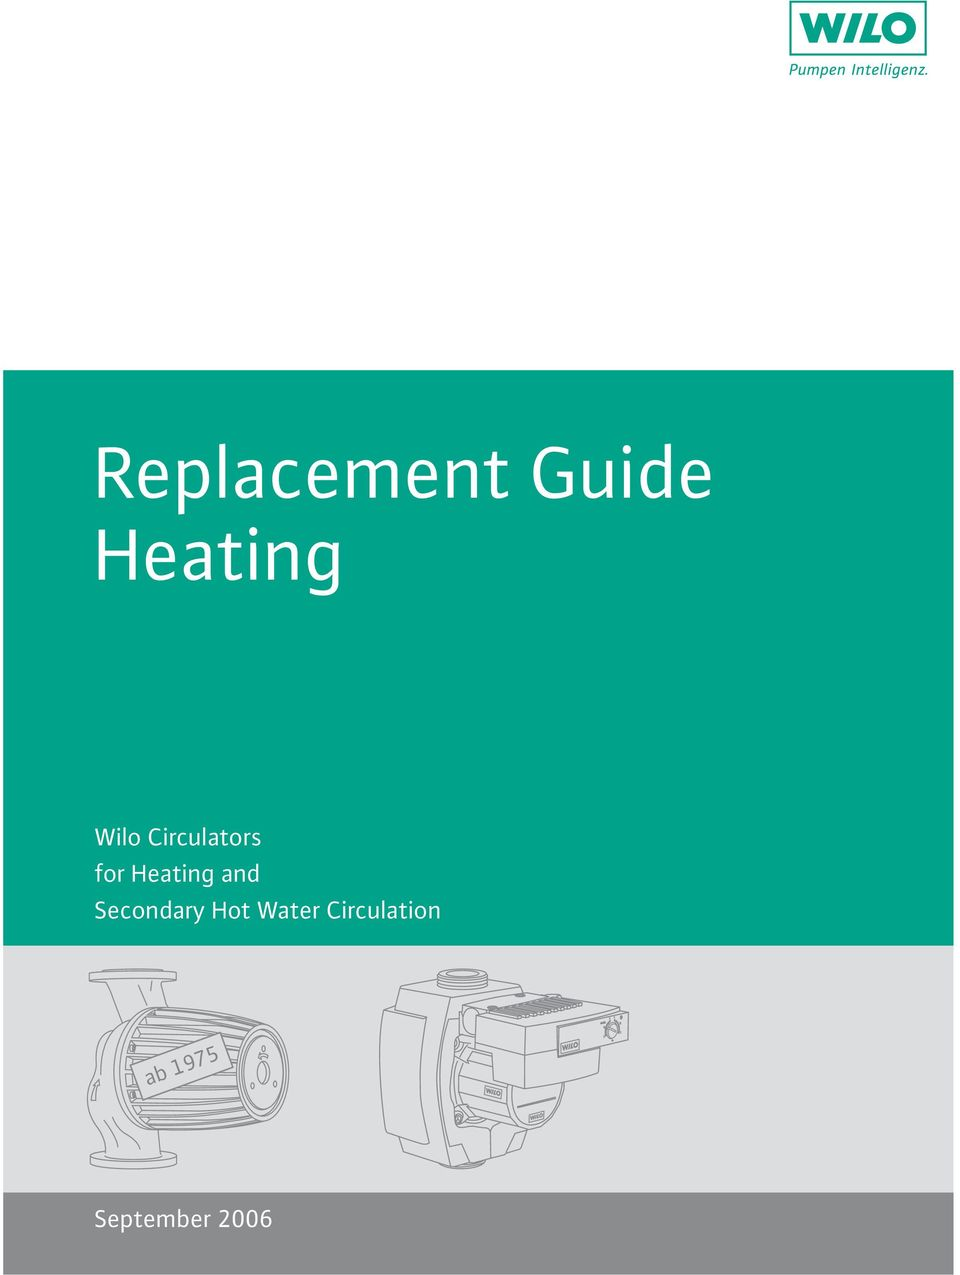 Replacement Guide Heating - PDF